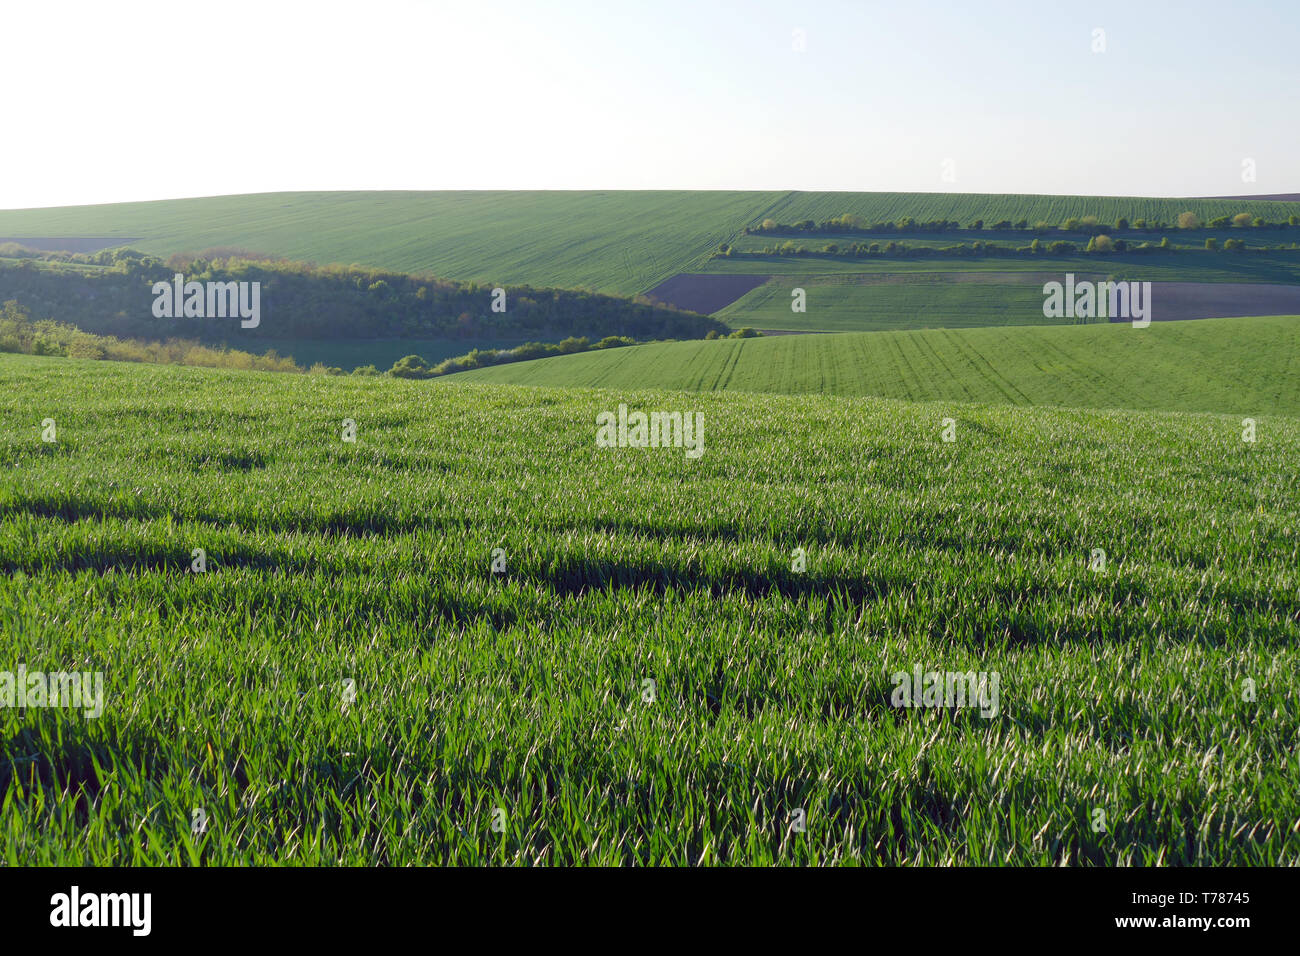 Green wheat fields. Agricultural land. Treated spacious field in the plane. Stock Photo